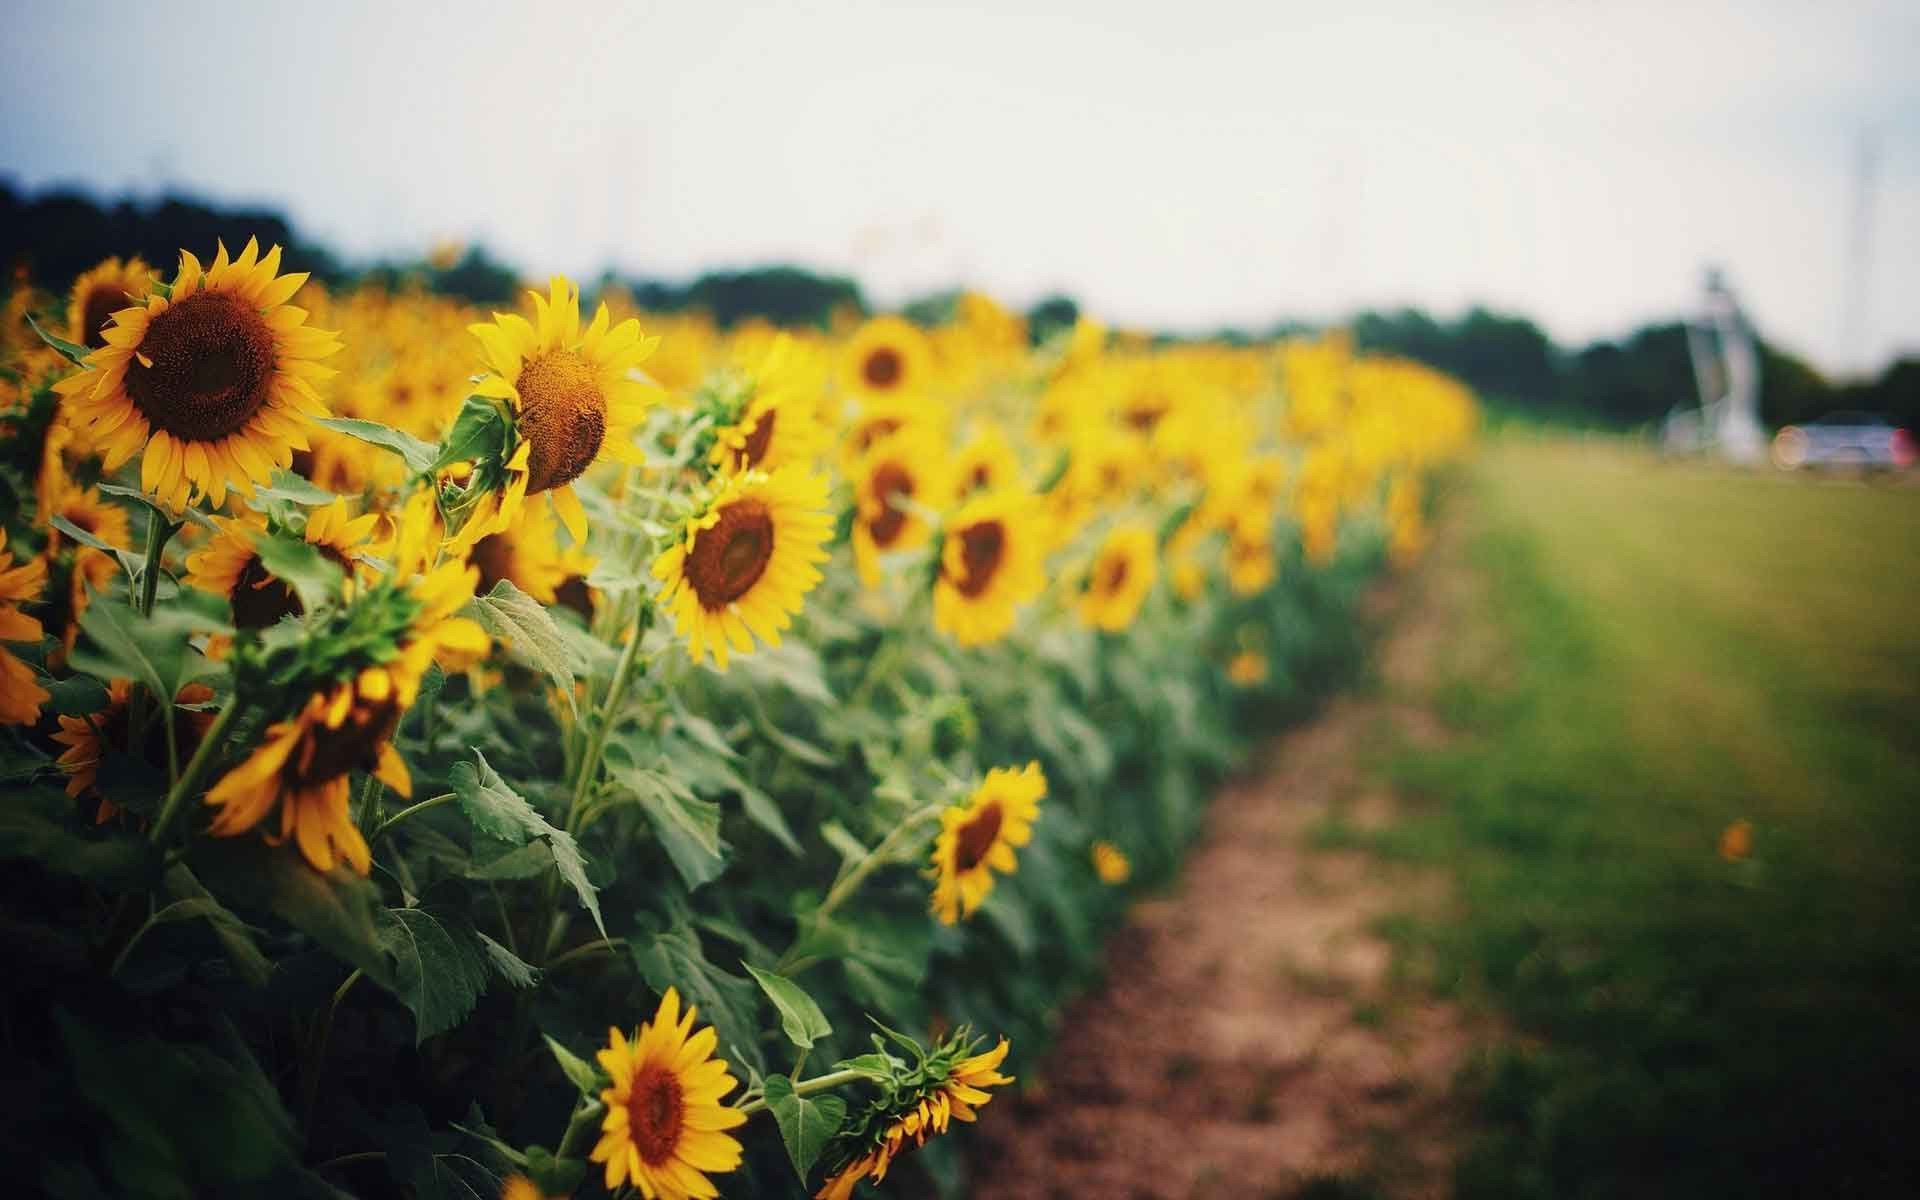 Sunflowers Wallpapers and Pictures for mobile and